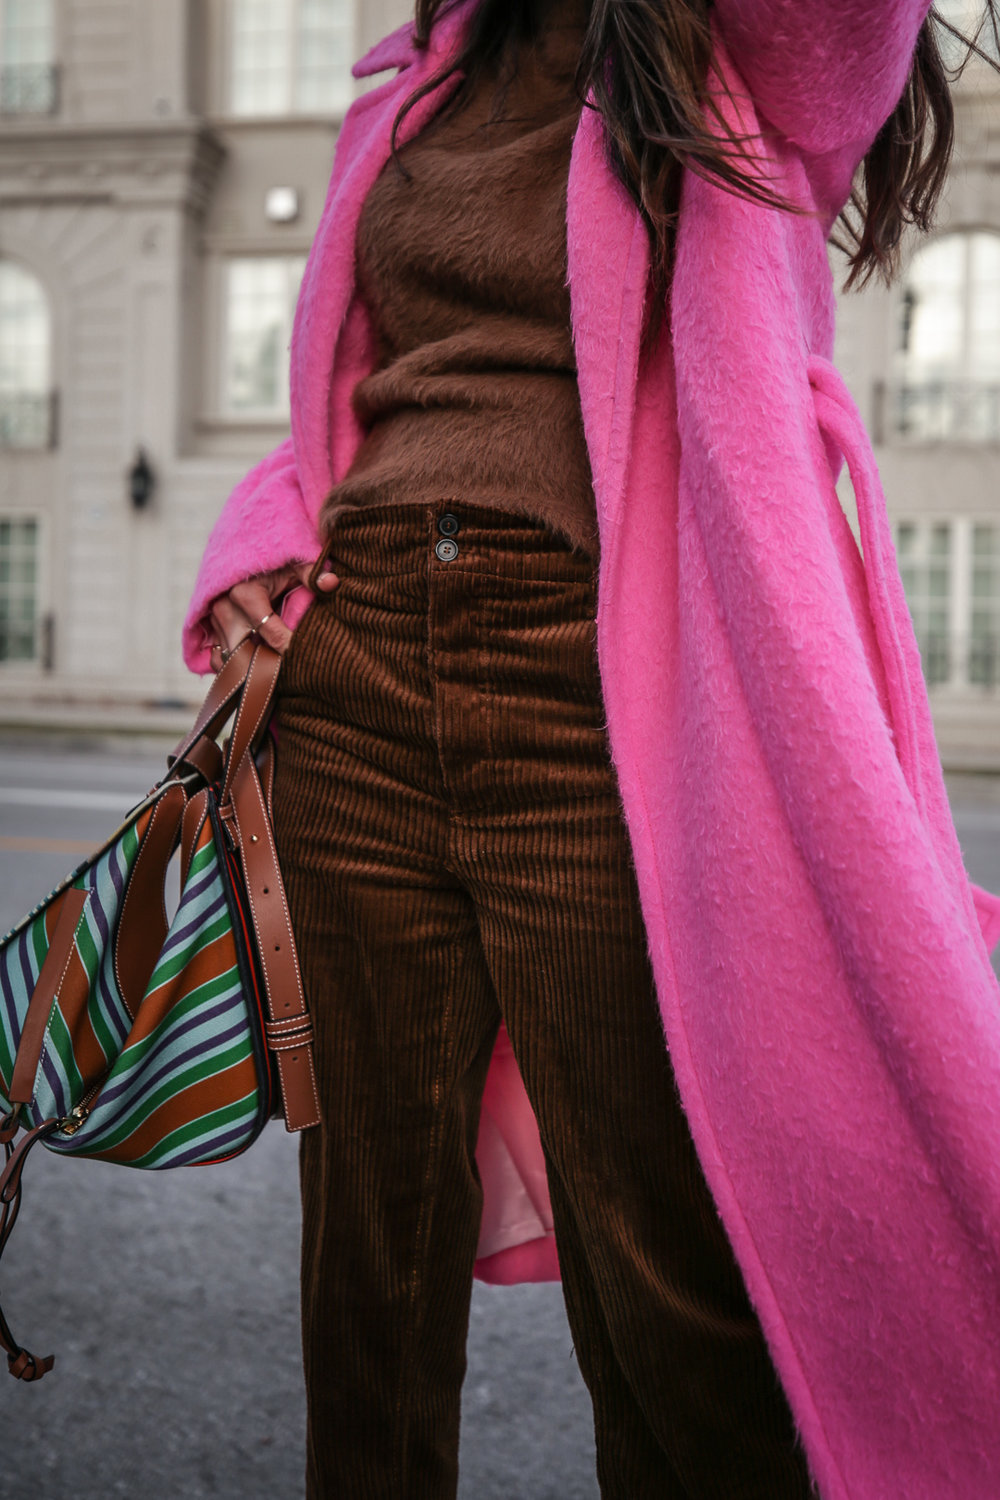 Nathalie Martin wearing Helmut Lang pink belt tie wool coat, brown corduroy pants, Zara brown textured sweater, Prada brown suede mules, Loewe striped Hammock bag, Bonlook Class sunglasses, street style, woahstyle.com_5220.jpg